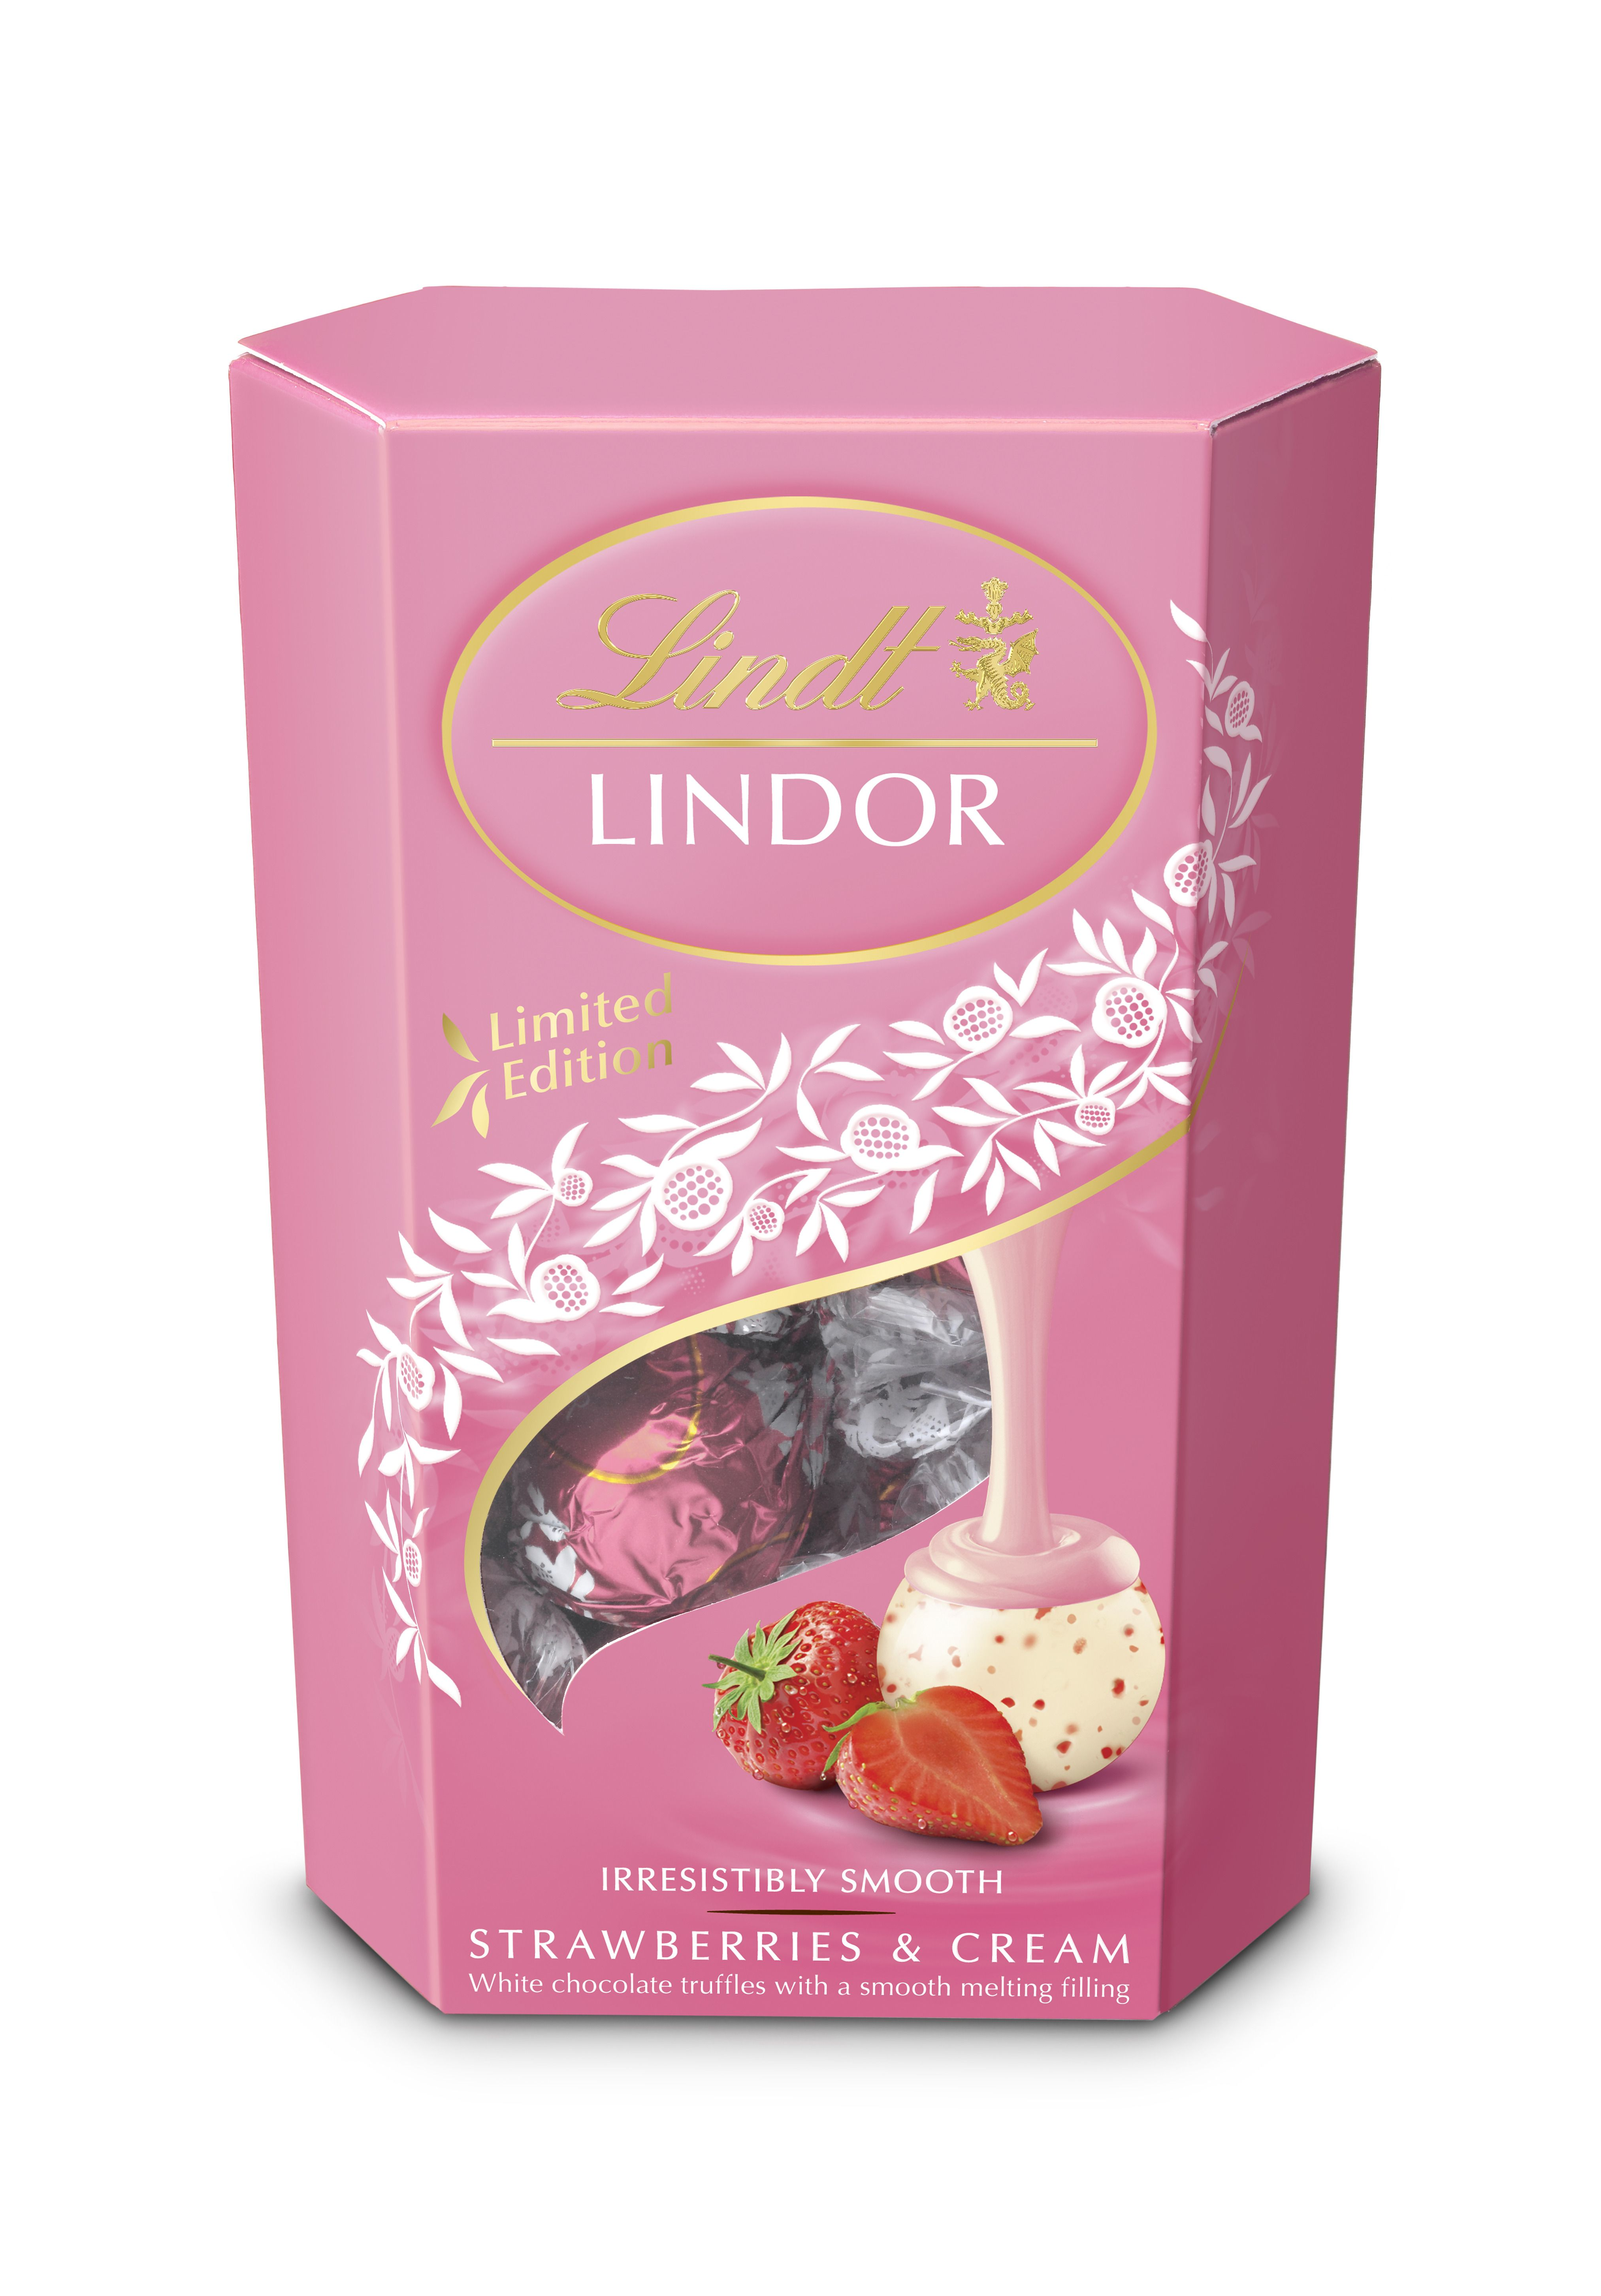 Strawberries And Cream Chocolates 4 59 Lindt Food Recipe In